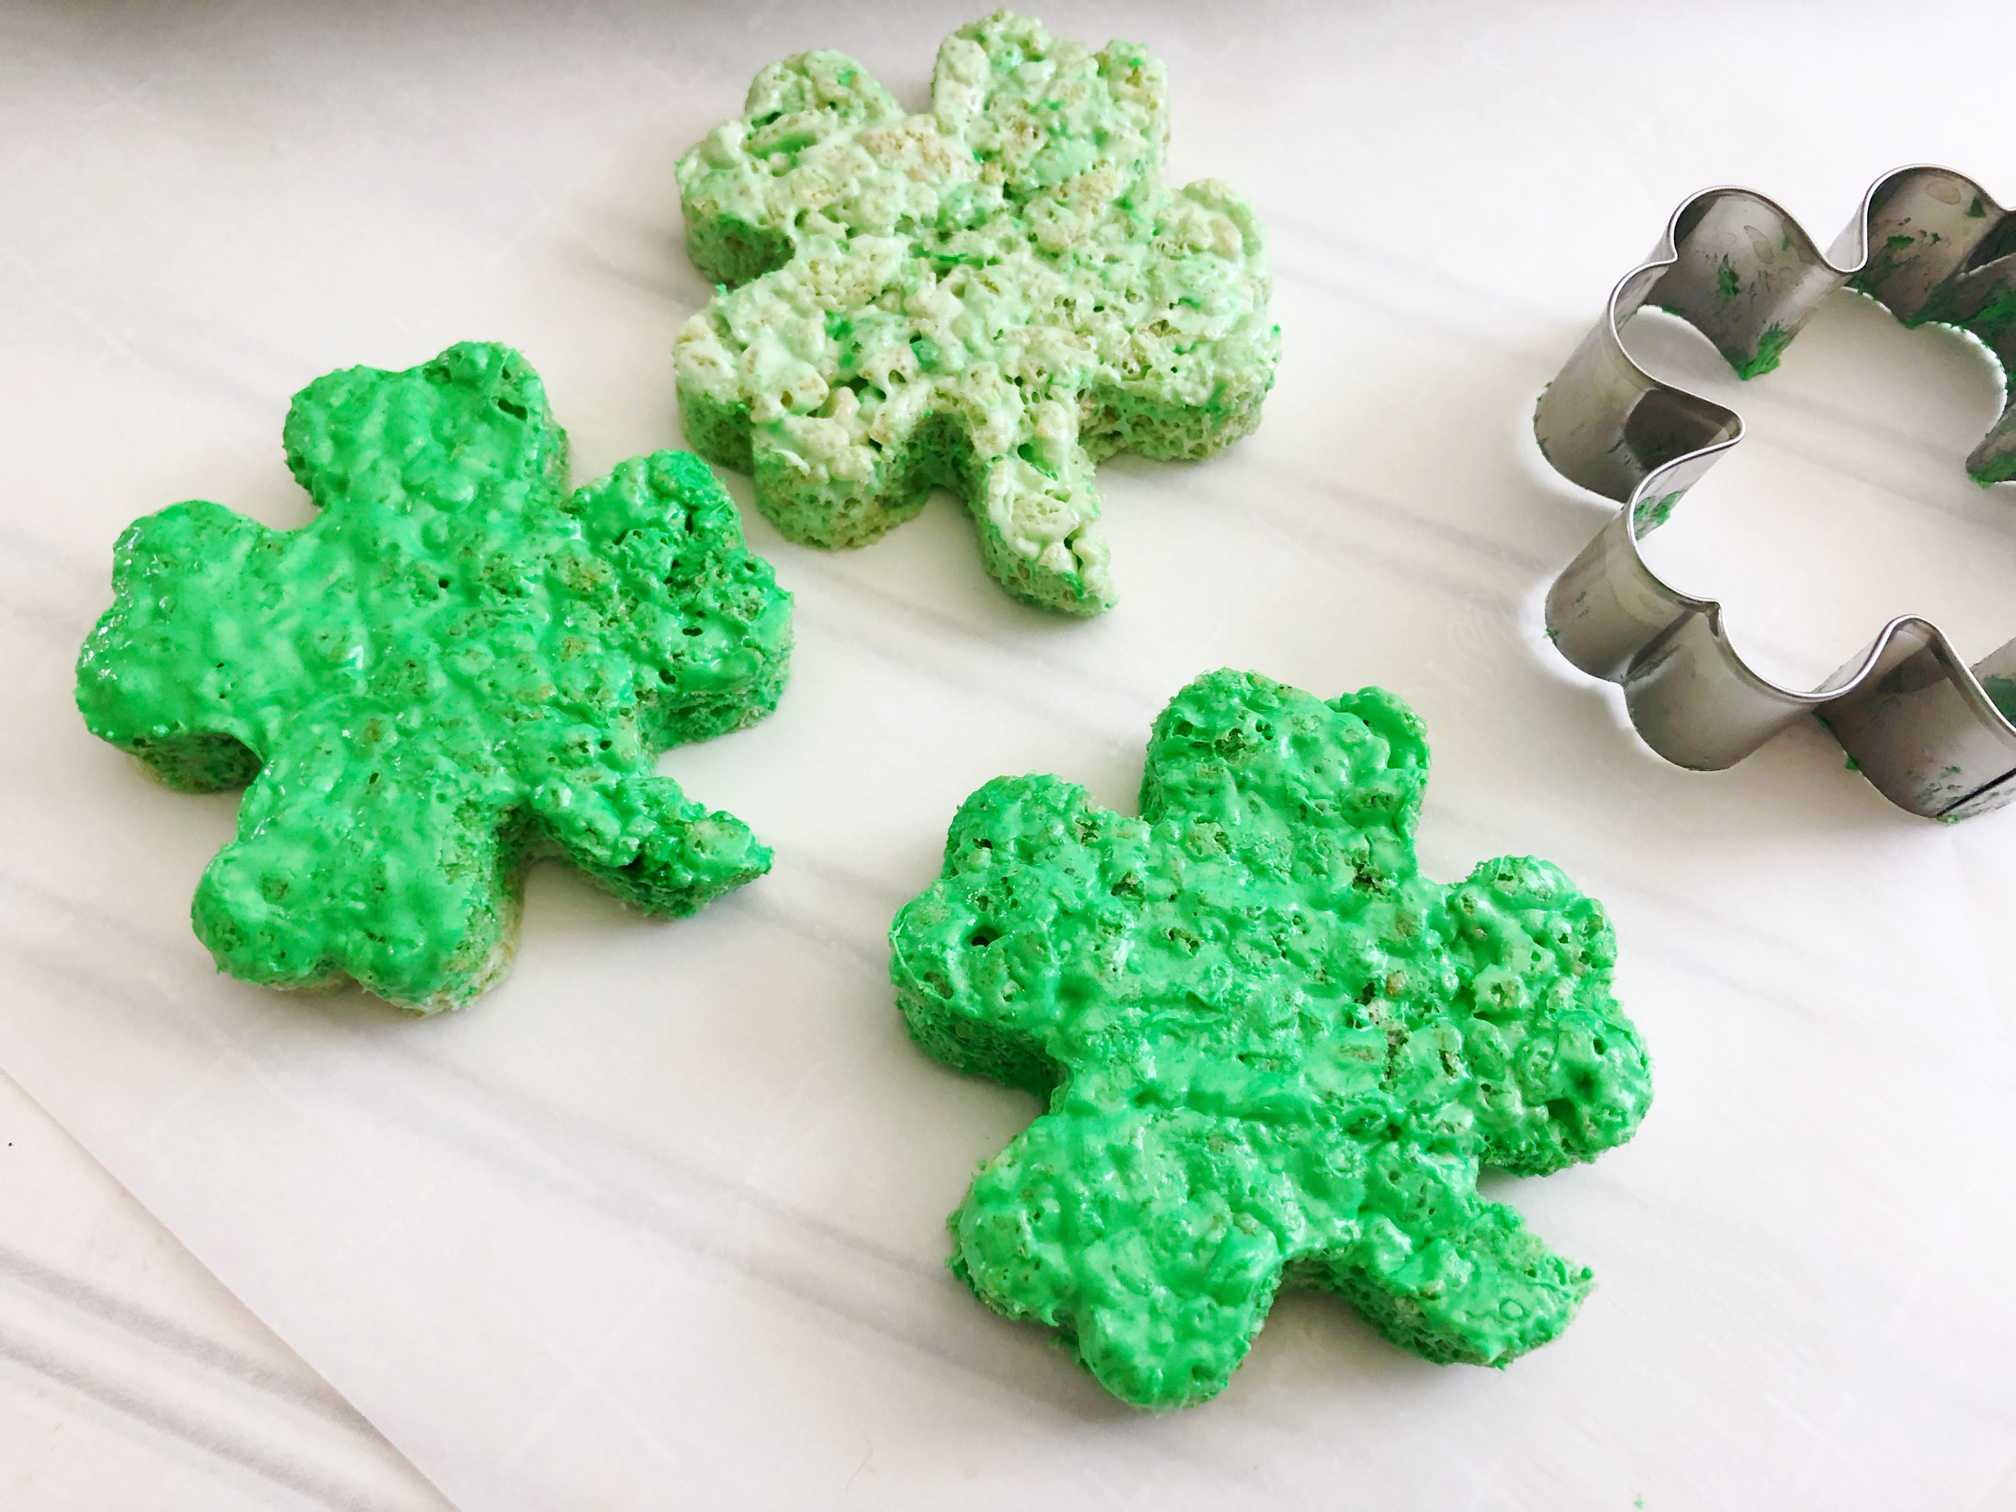 Perfect Snacks for St. Patrick's Day